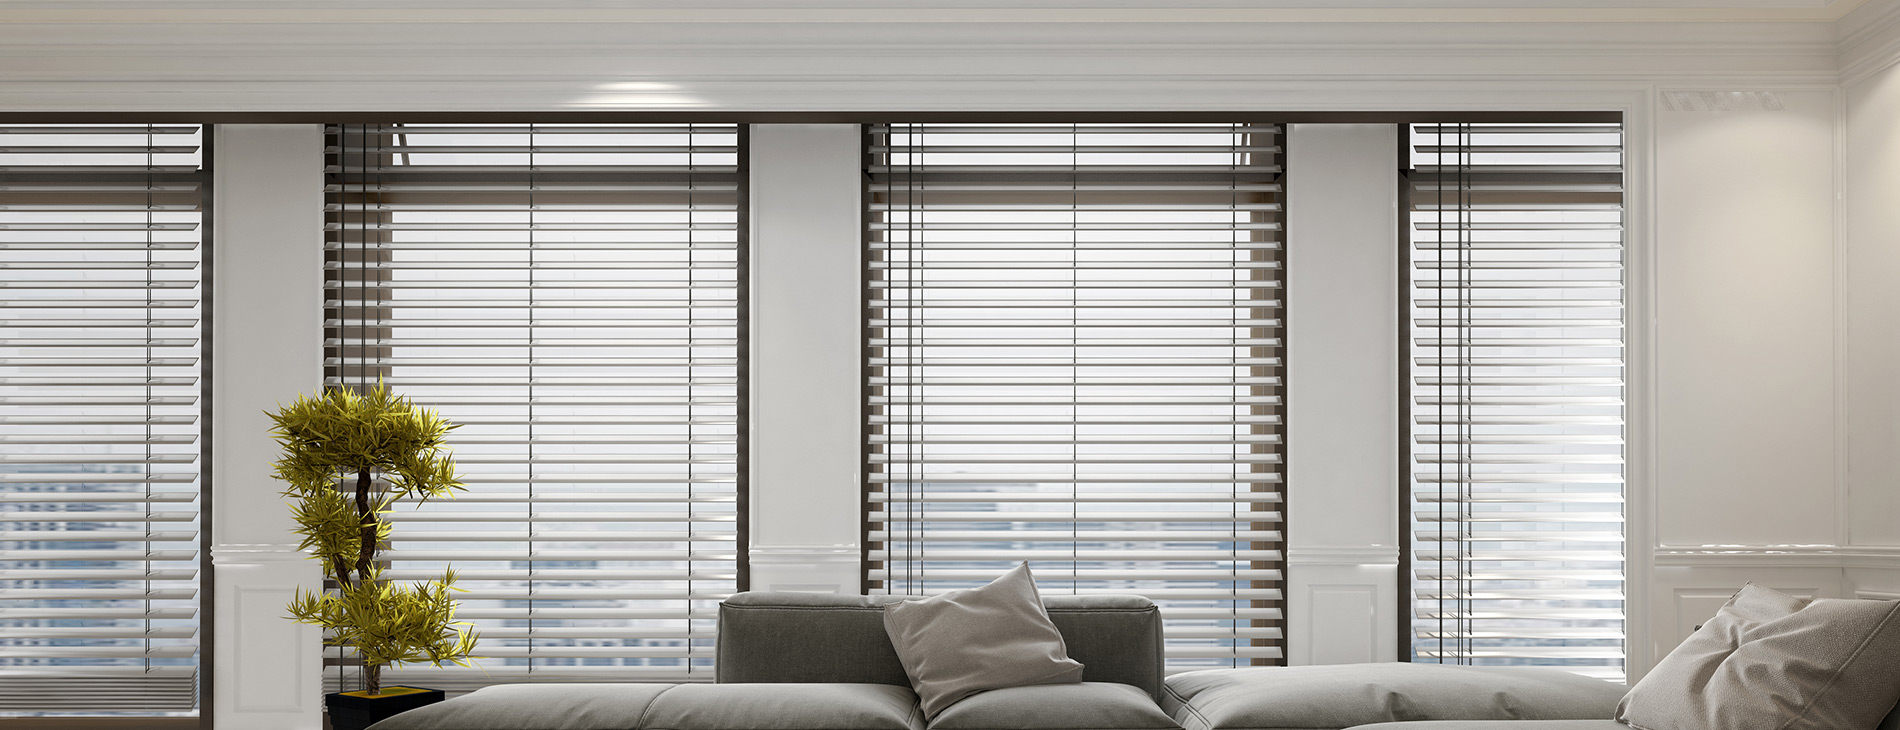 design window custom info wood blinds home graber faux dalarna depot interior inches coverings